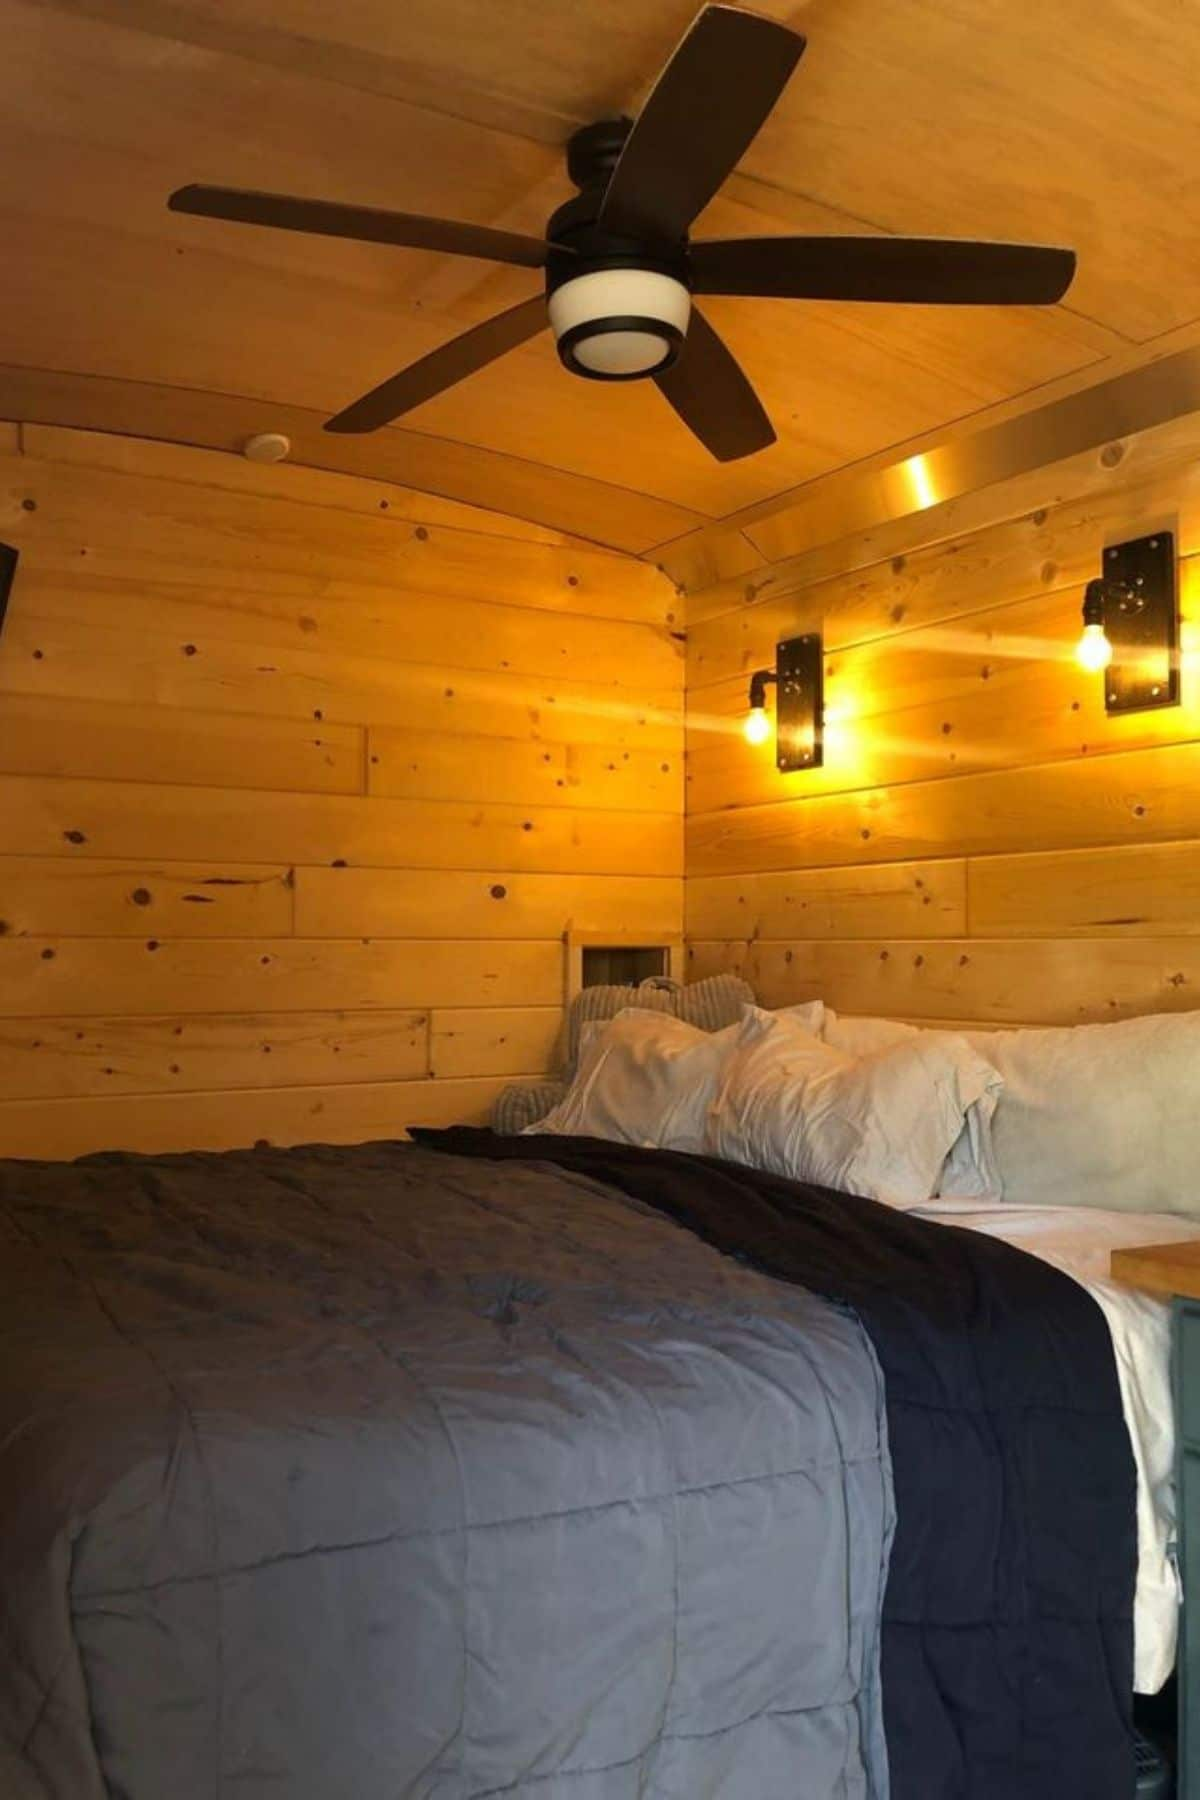 Bed against wall with two wall mounted lights and ceiling fan above